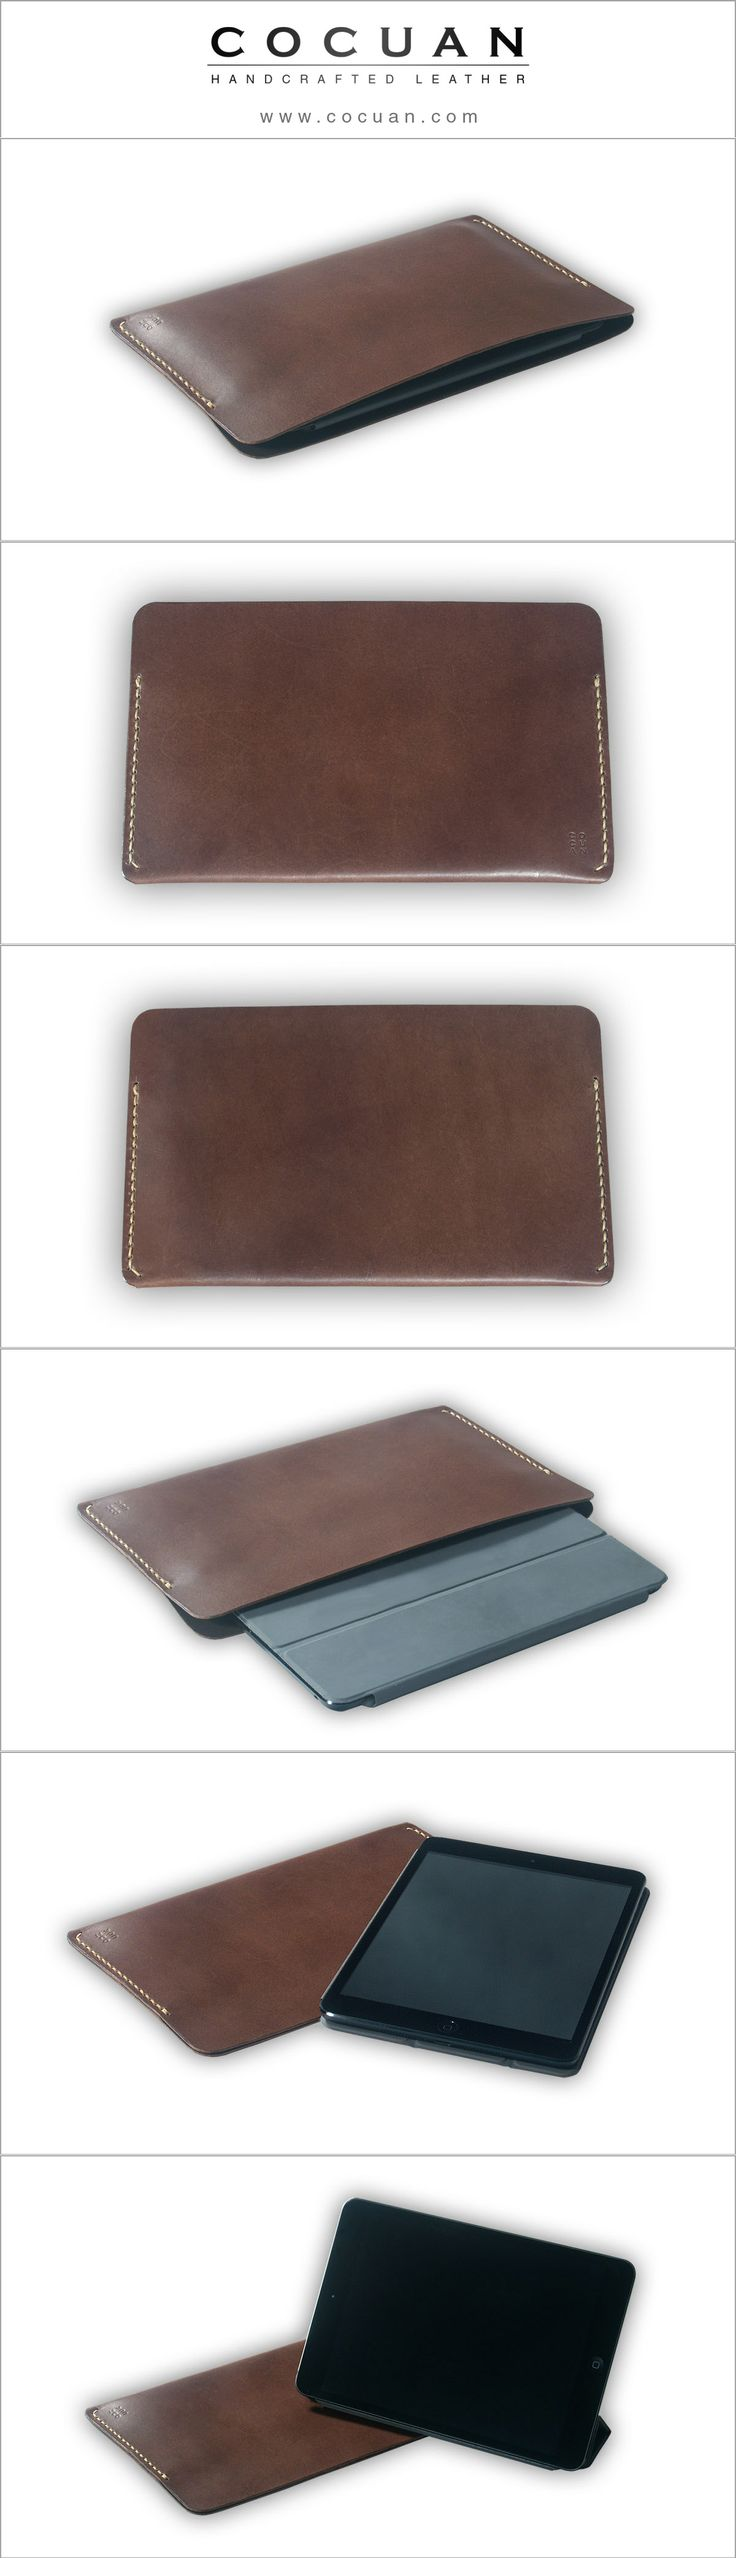 iPad case www. cocuan.com #leather #handmade #handcraftleather #leathercase…